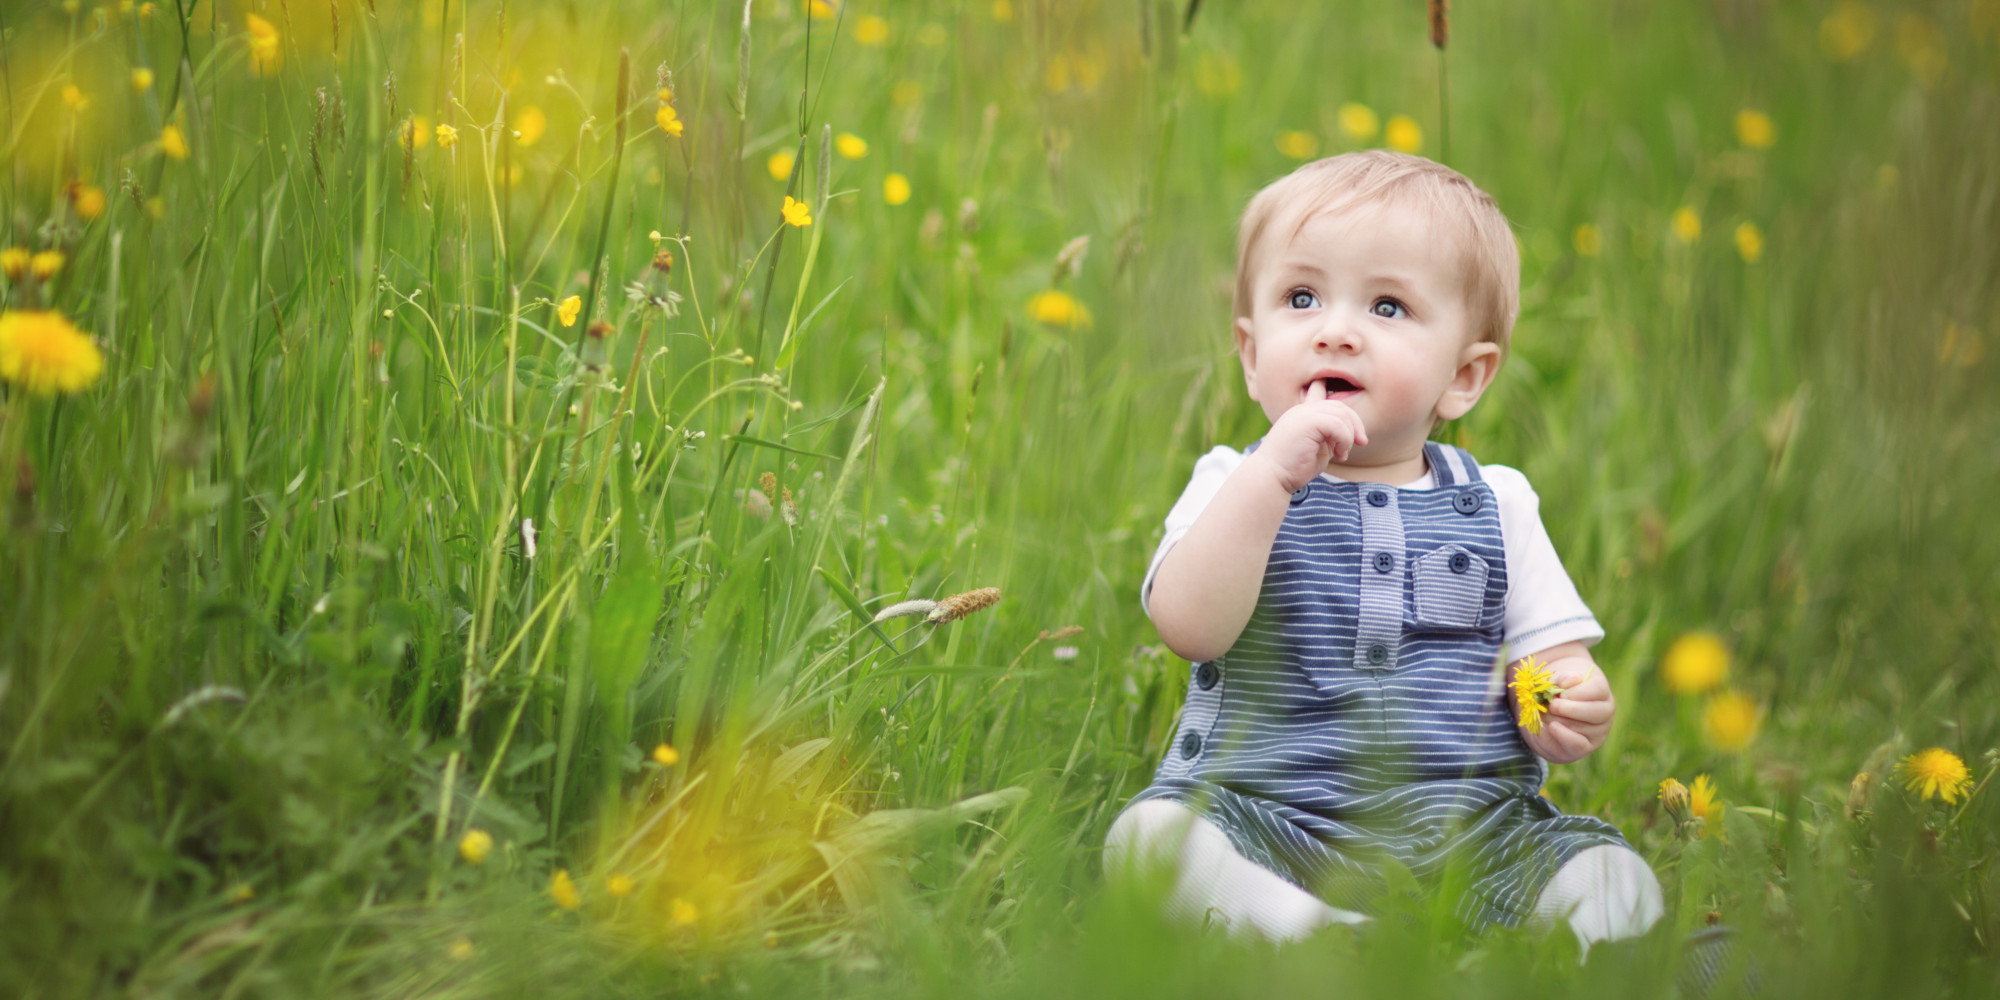 Cute Boy Babies Wallpapers For Facebook Profile 12 Sweet Baby Names For Nature Loving Parents Huffpost